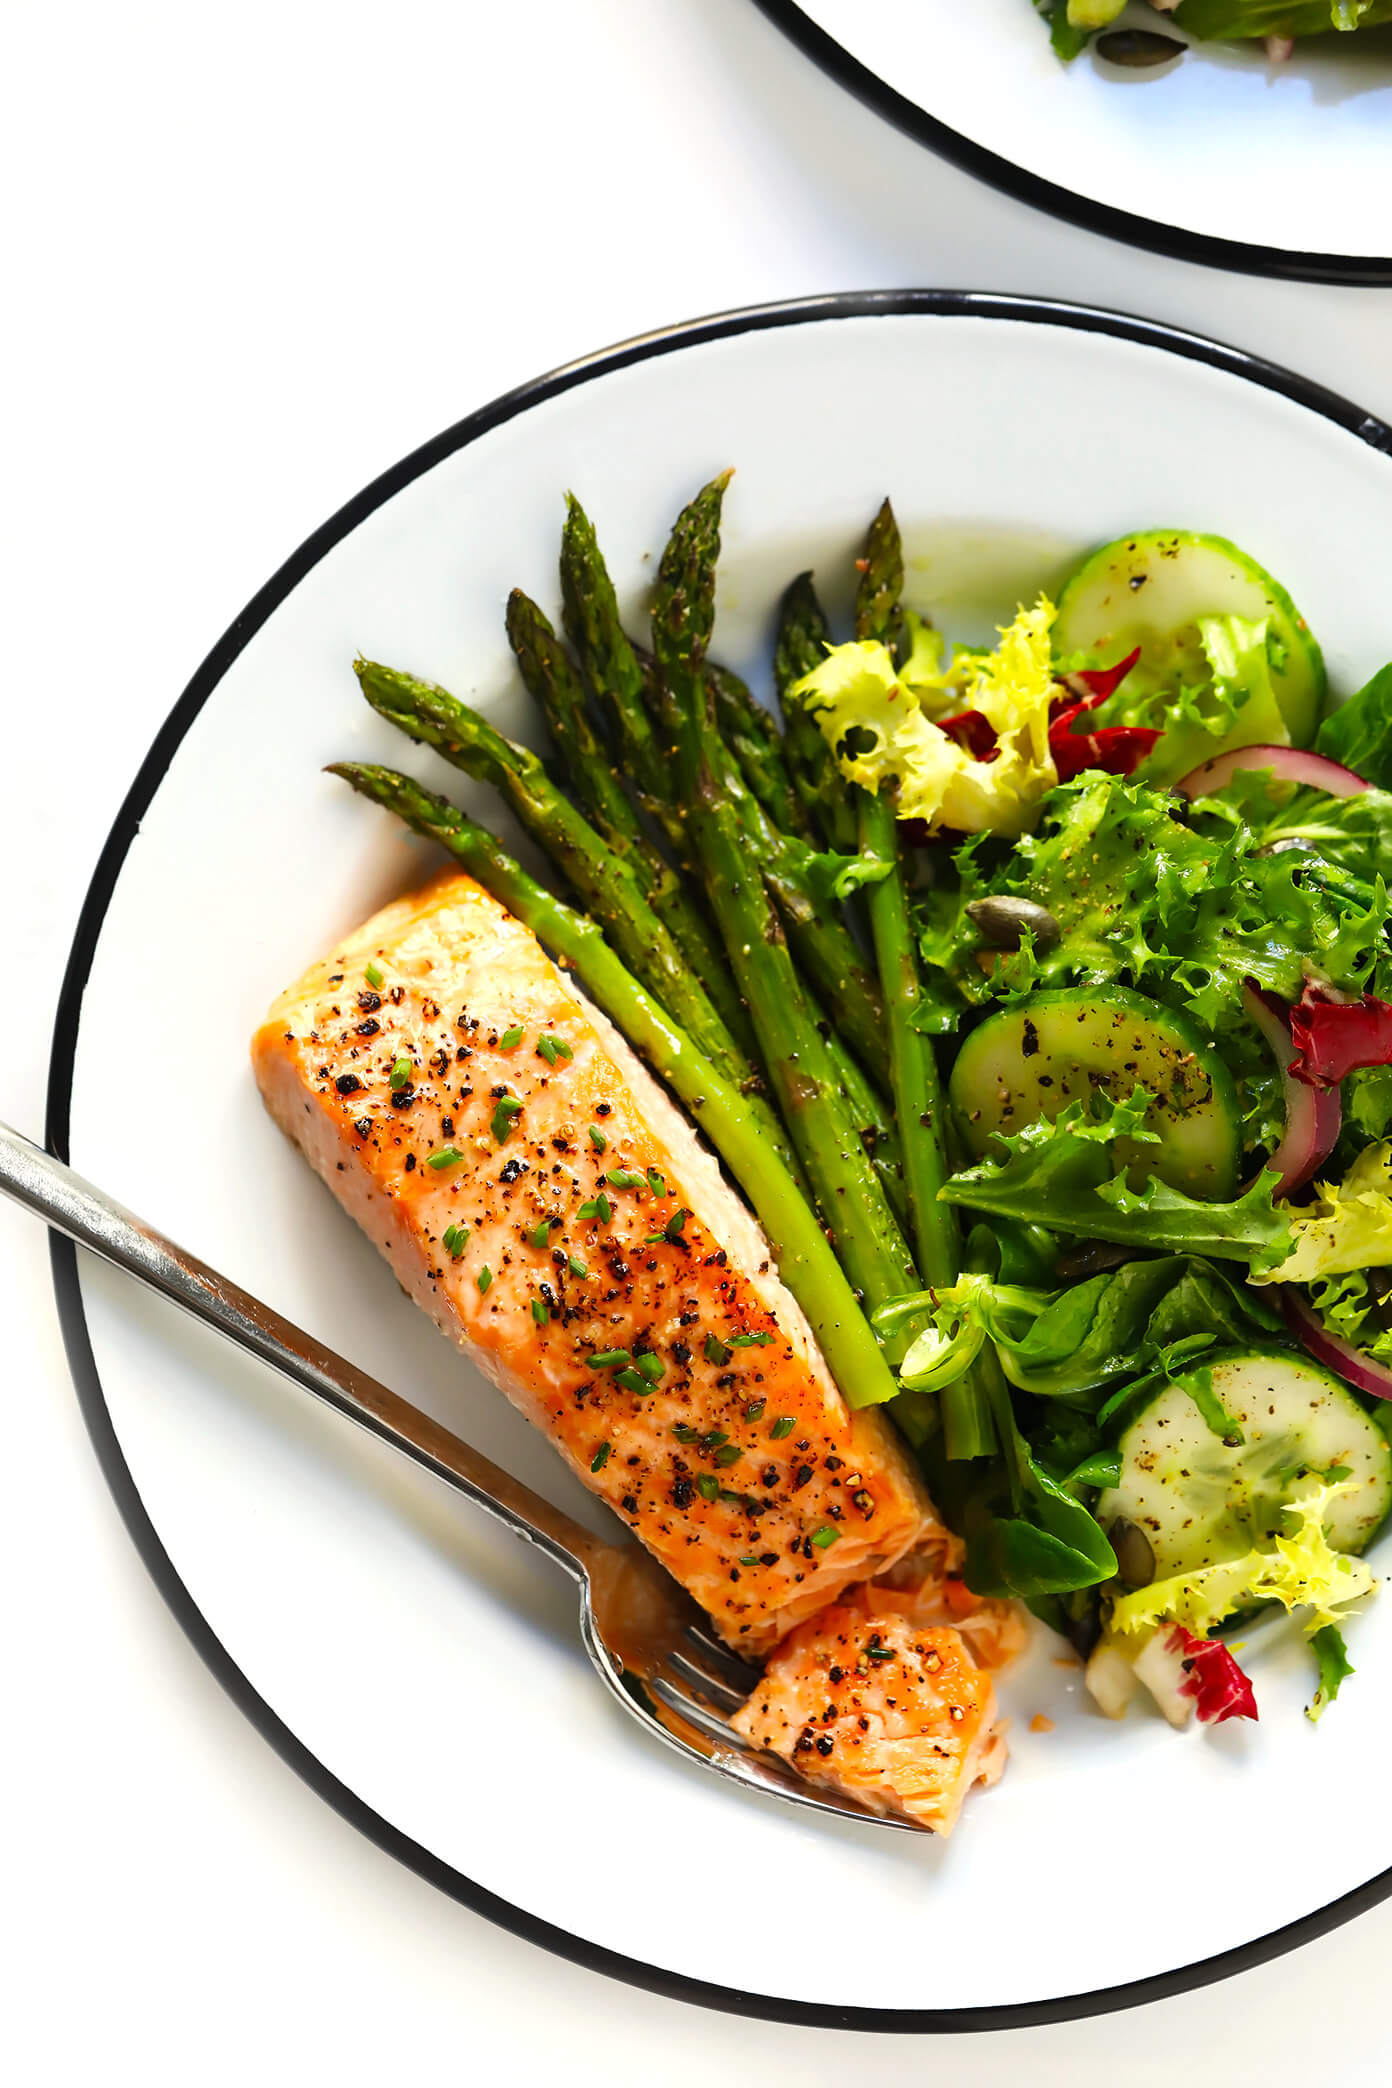 Baked Salmon Recipe with Roasted Asparagus and Everyday Salad